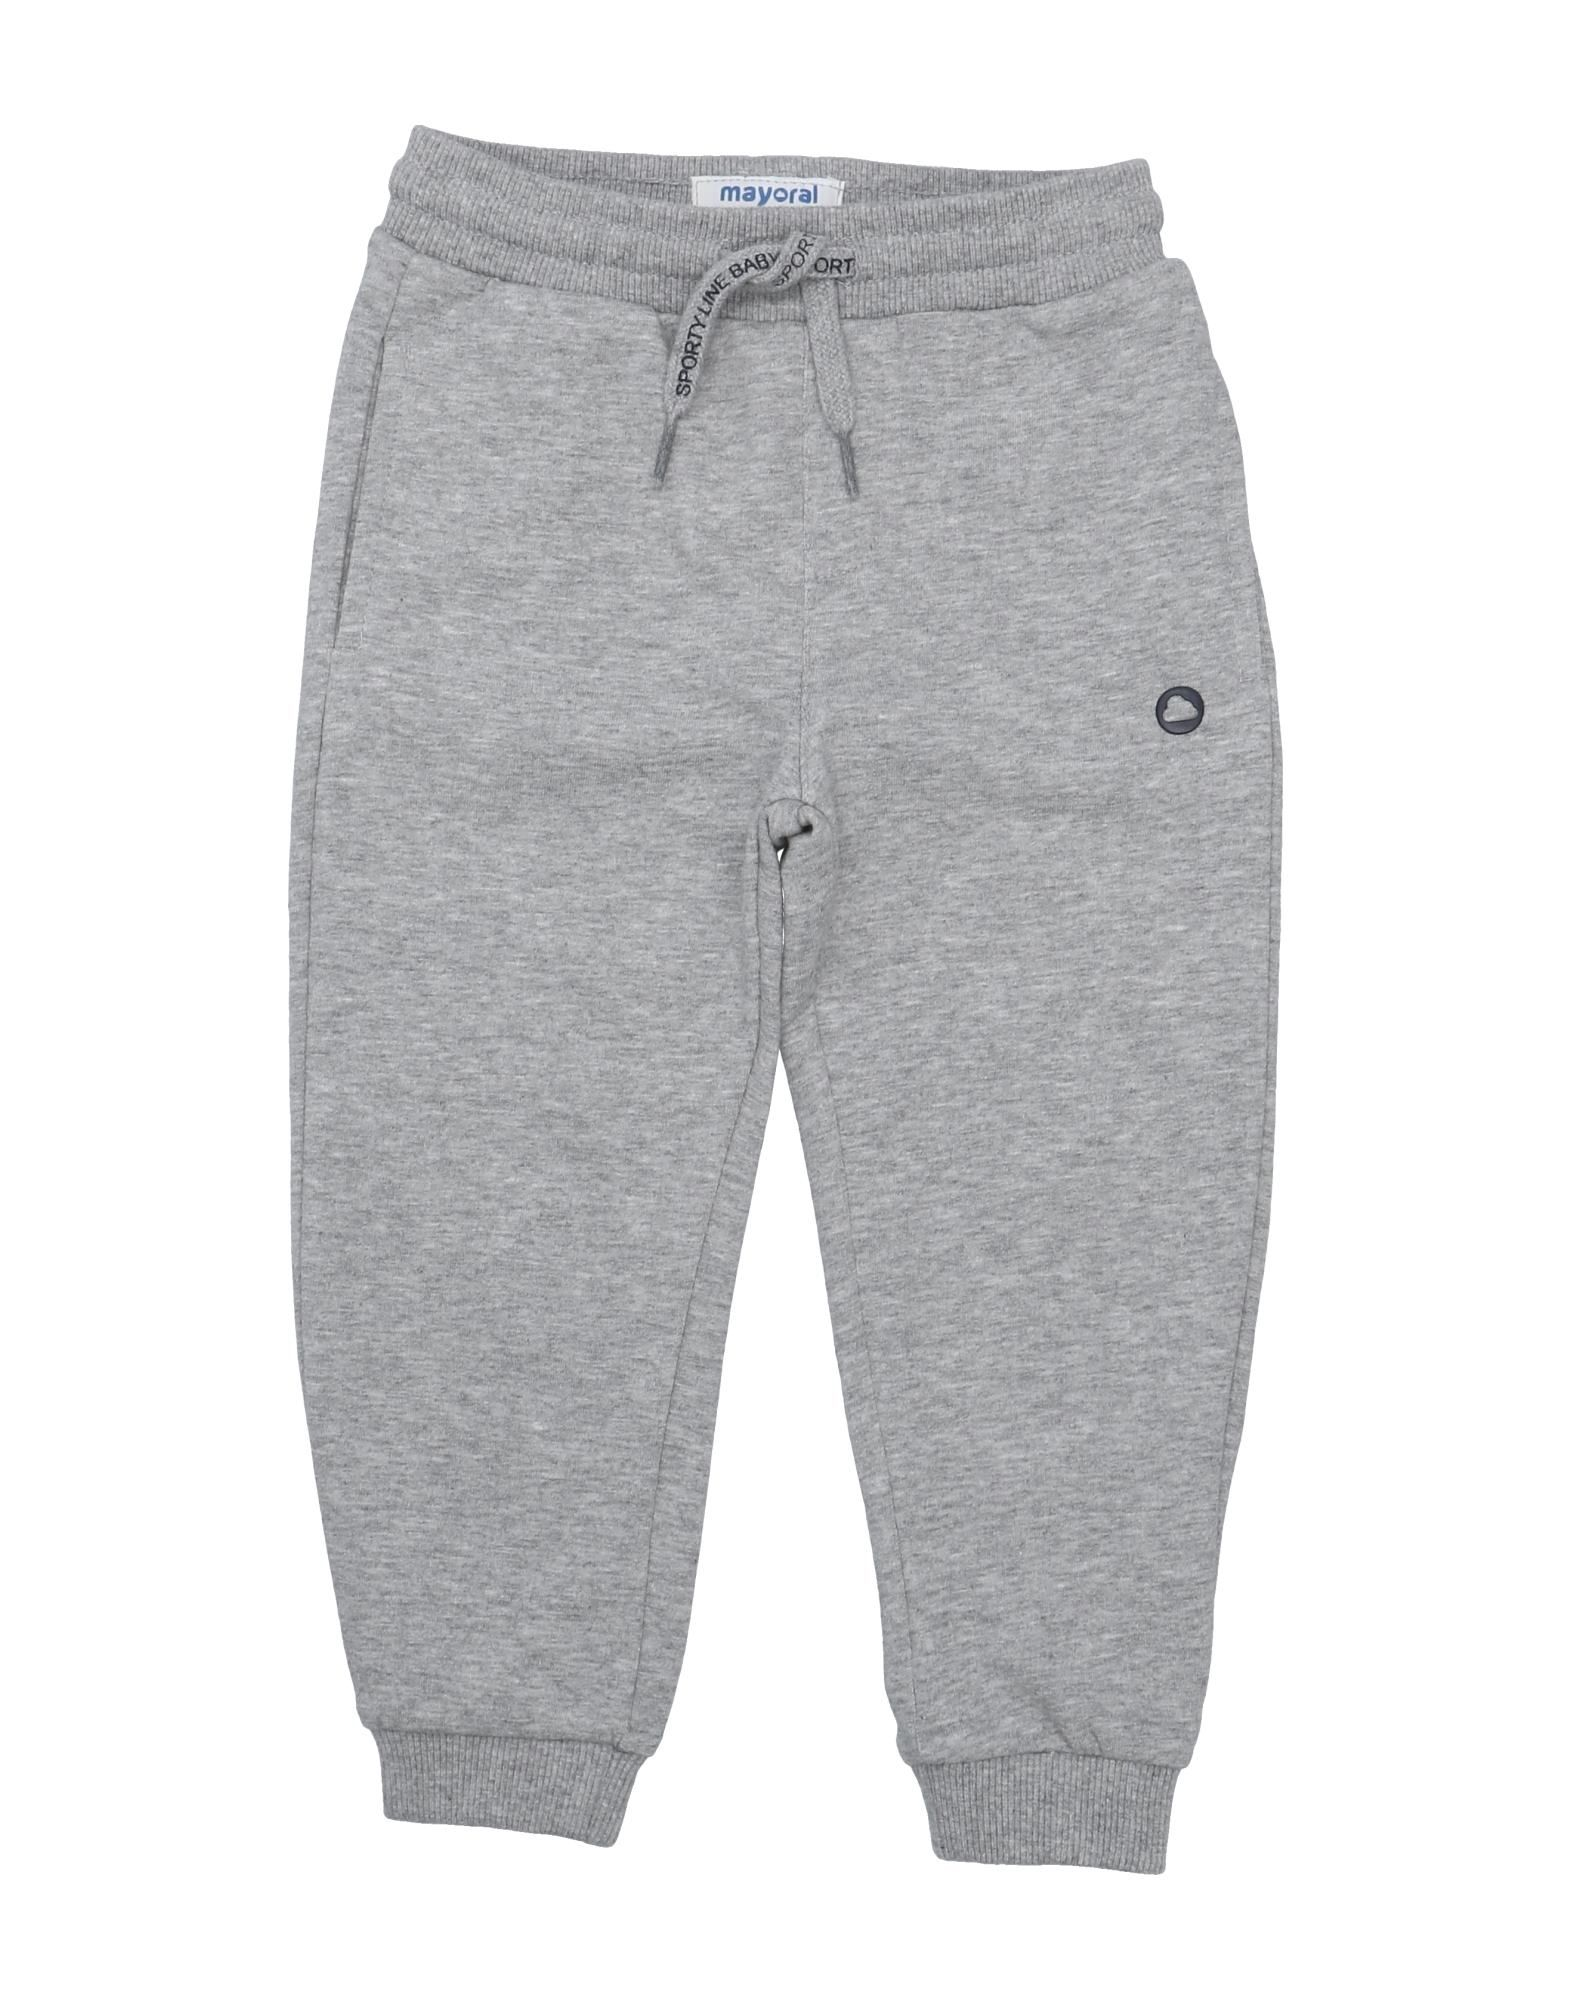 Mayoral Kids' Casual Pants In Gray